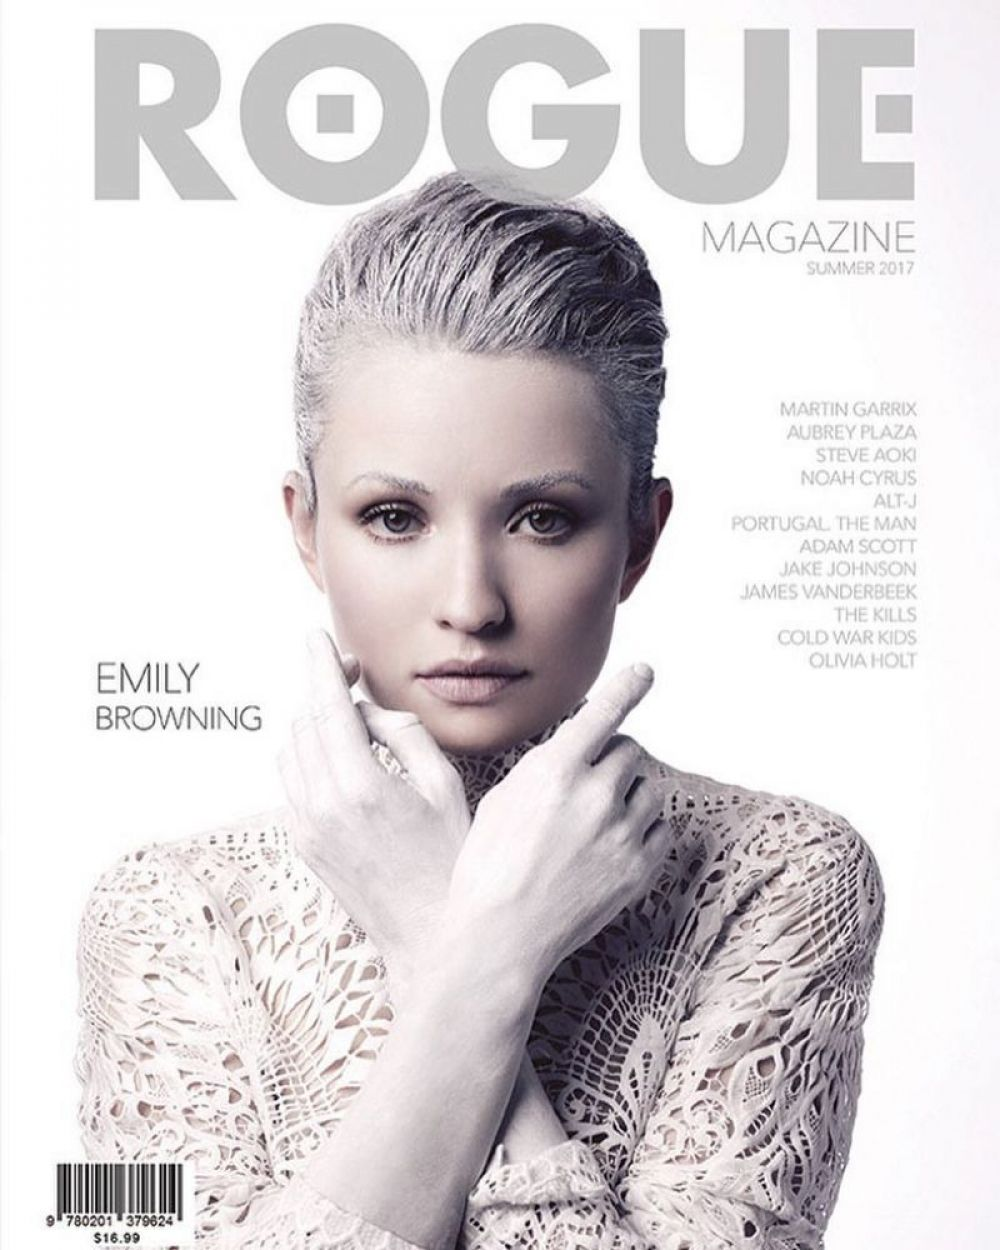 EMILY BROWNING for Rogue Magazine, Summer 2017